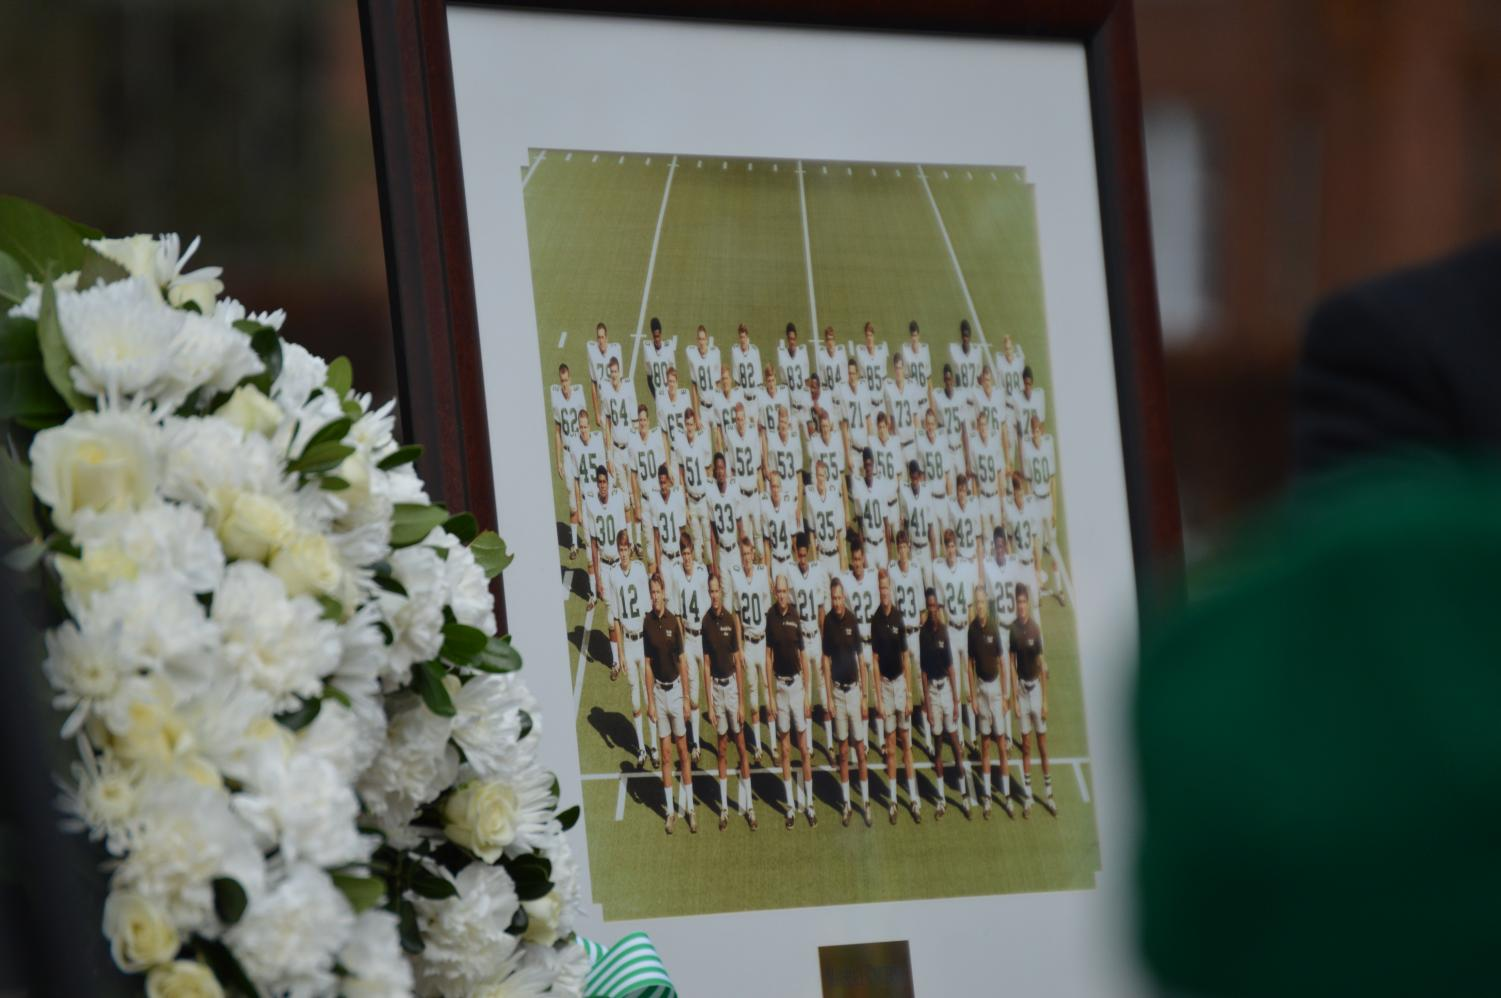 A photo of the 1970 Thundering Herd football team at the 2018 Memorial Fountain Ceremony.